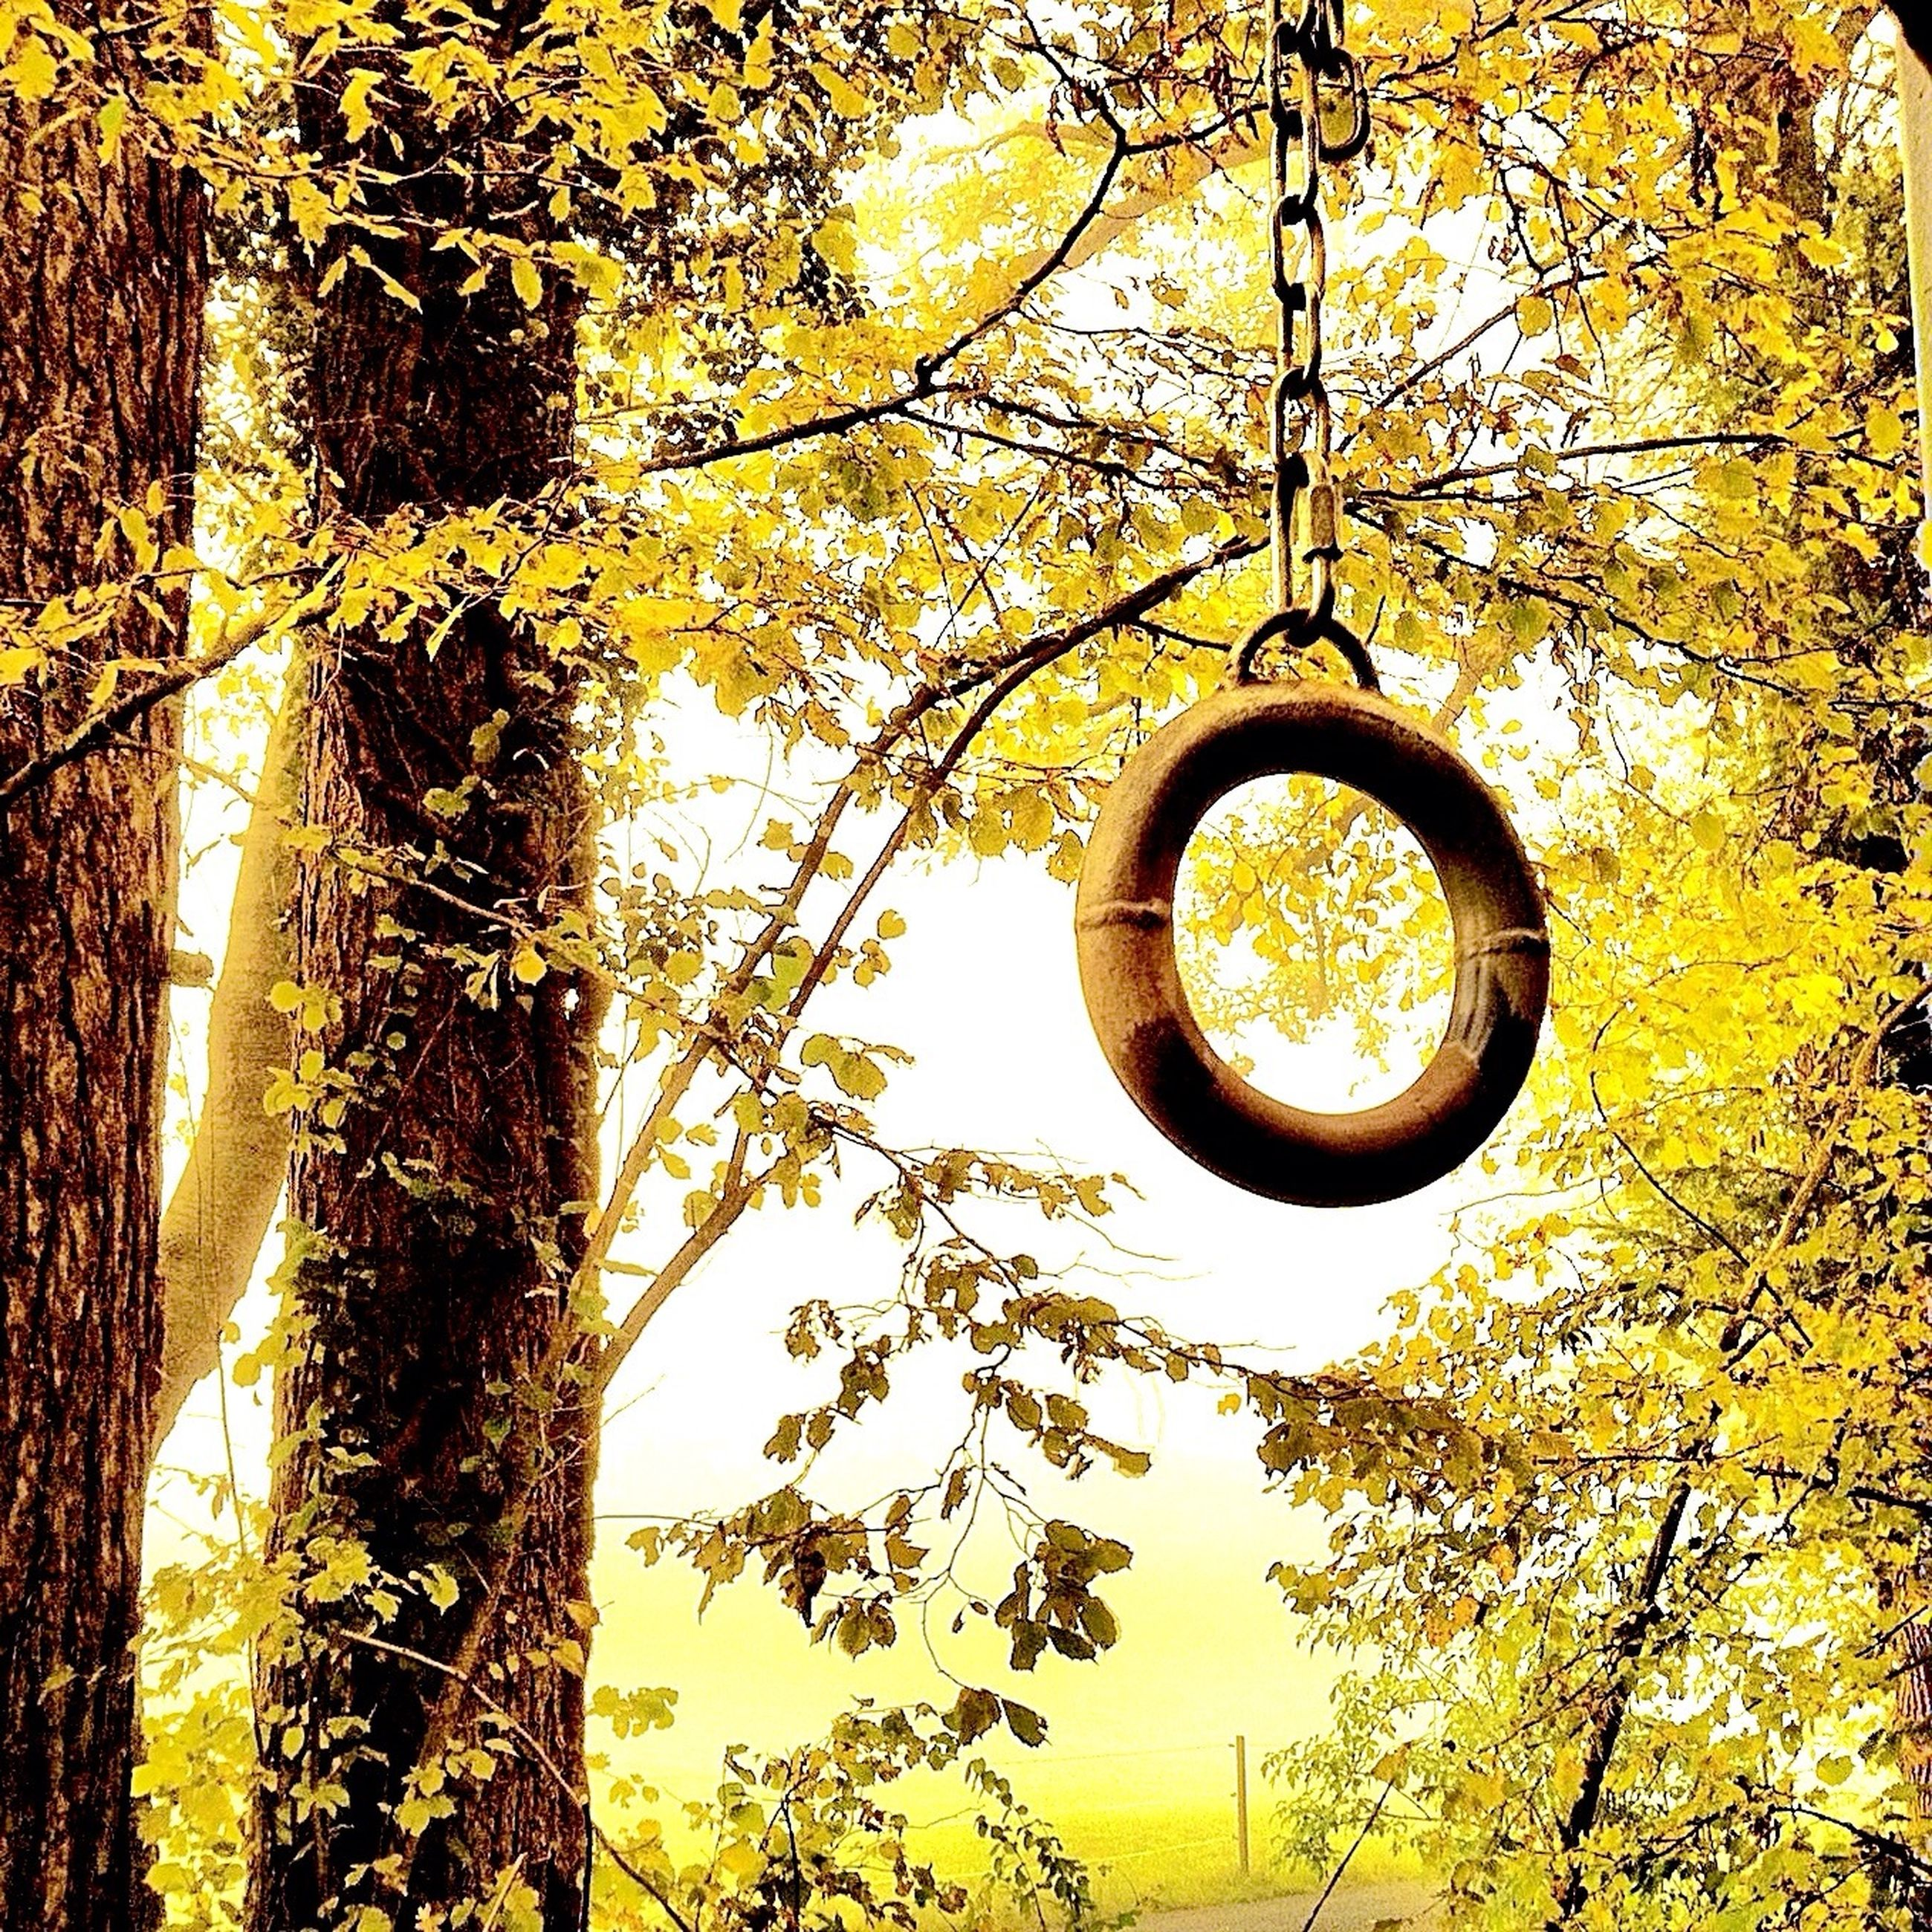 tree, yellow, low angle view, branch, circle, growth, close-up, nature, orange color, outdoors, no people, metal, lighting equipment, sky, protection, day, hanging, beauty in nature, safety, tranquility